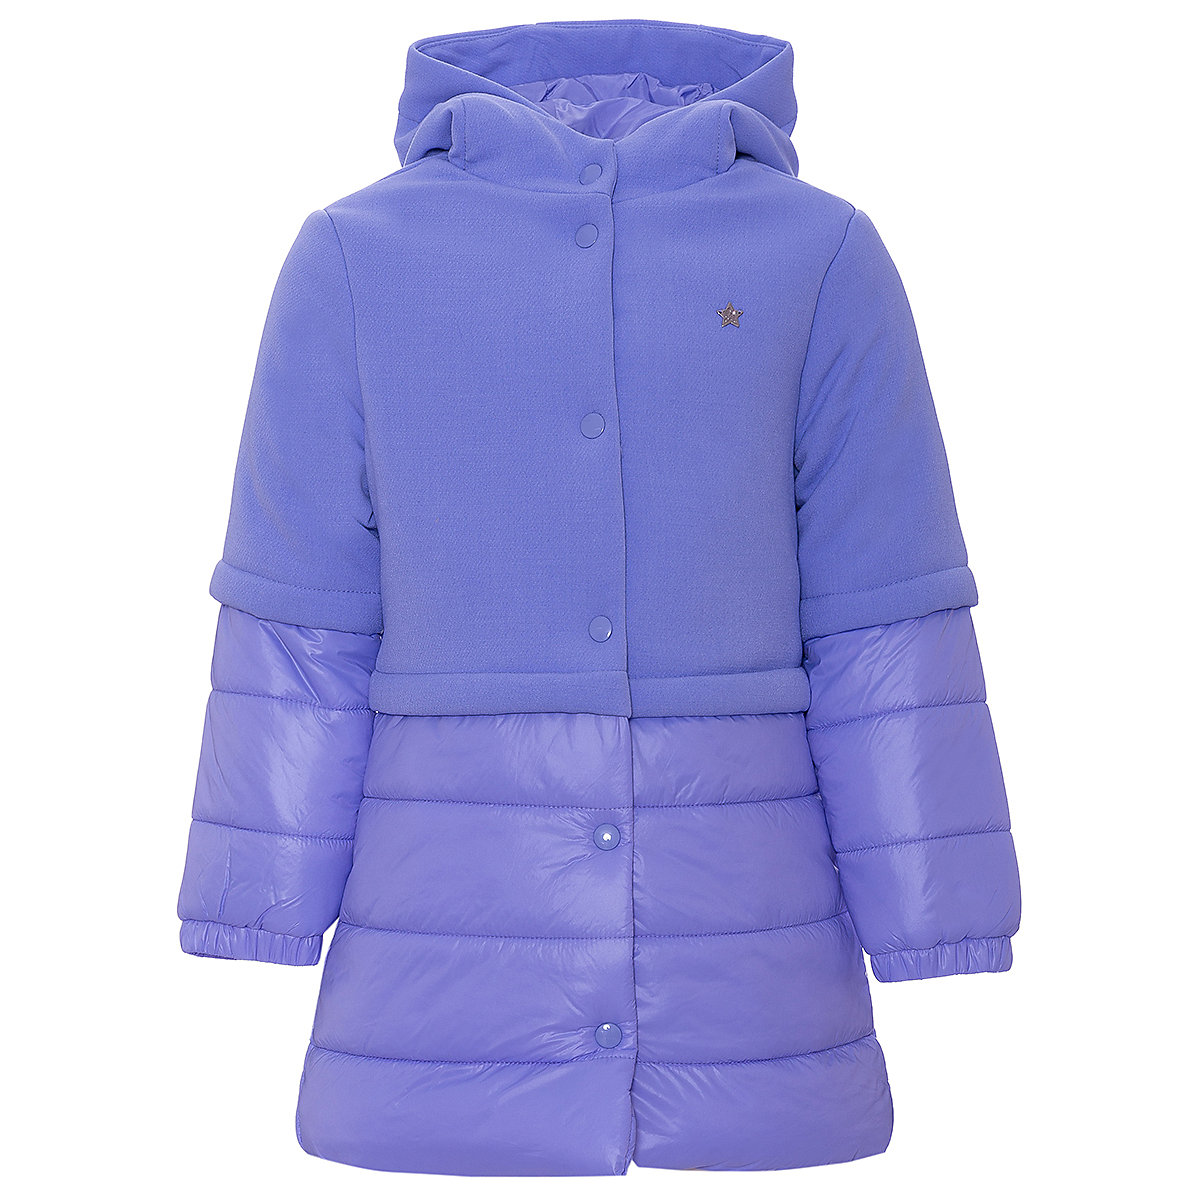 Original Marines Jackets & Coats 9500407 Polyester Girls girl children clothing reima jackets 8665394 for girls polyester winter fur clothes girl